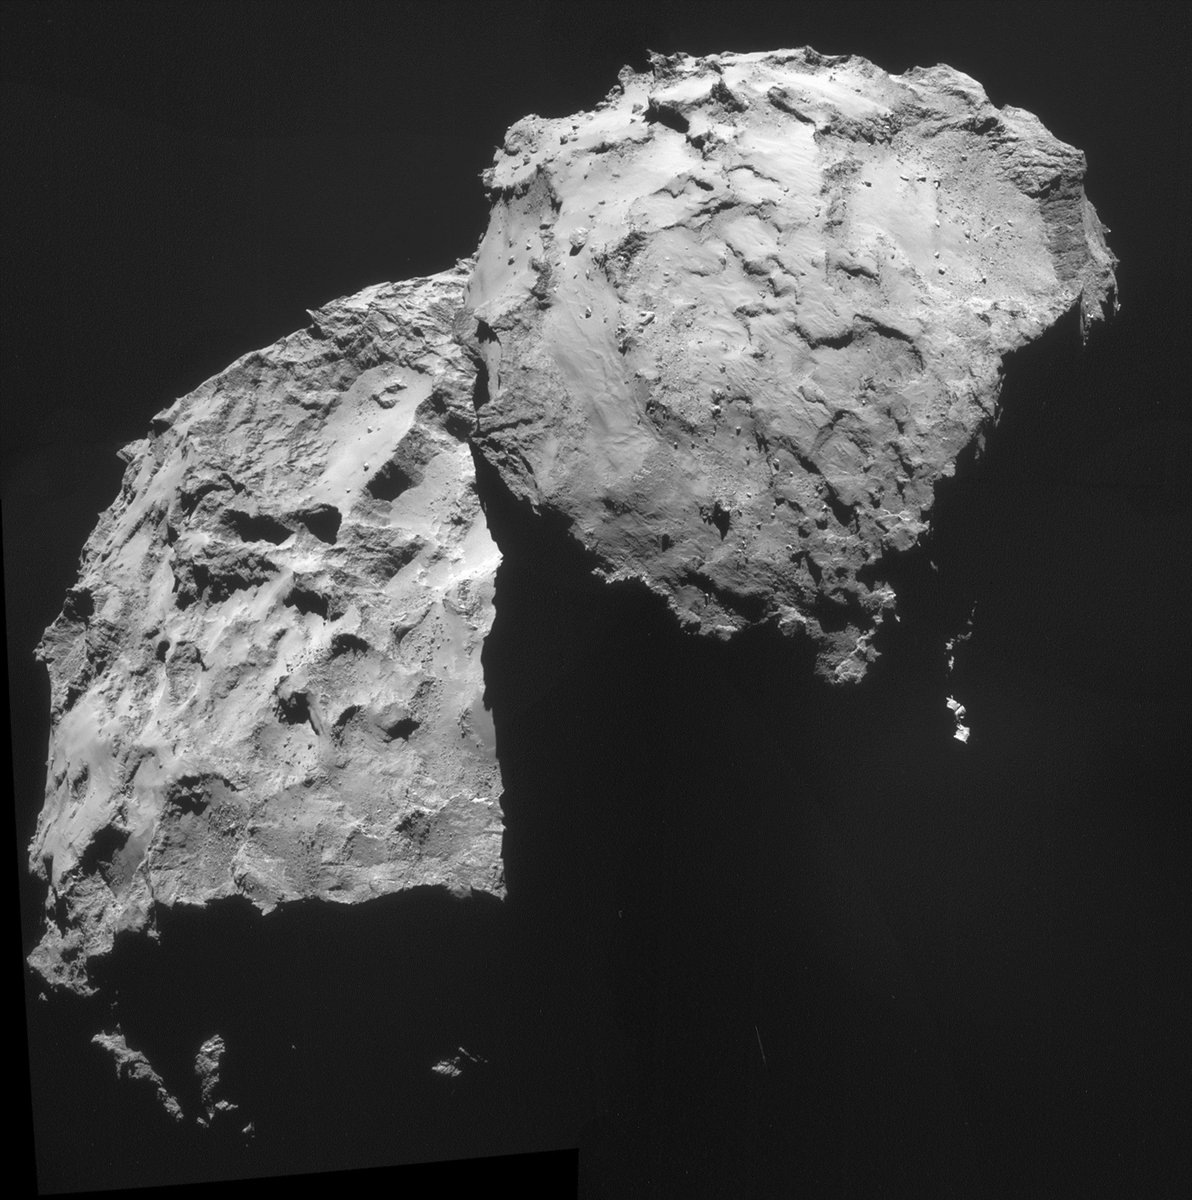 SUCCESS! @Philae2014 had successfully touched down on the surface of the comet! #CometLanding! YOU ARE HERE↓ http://t.co/BdHFbcxSoE